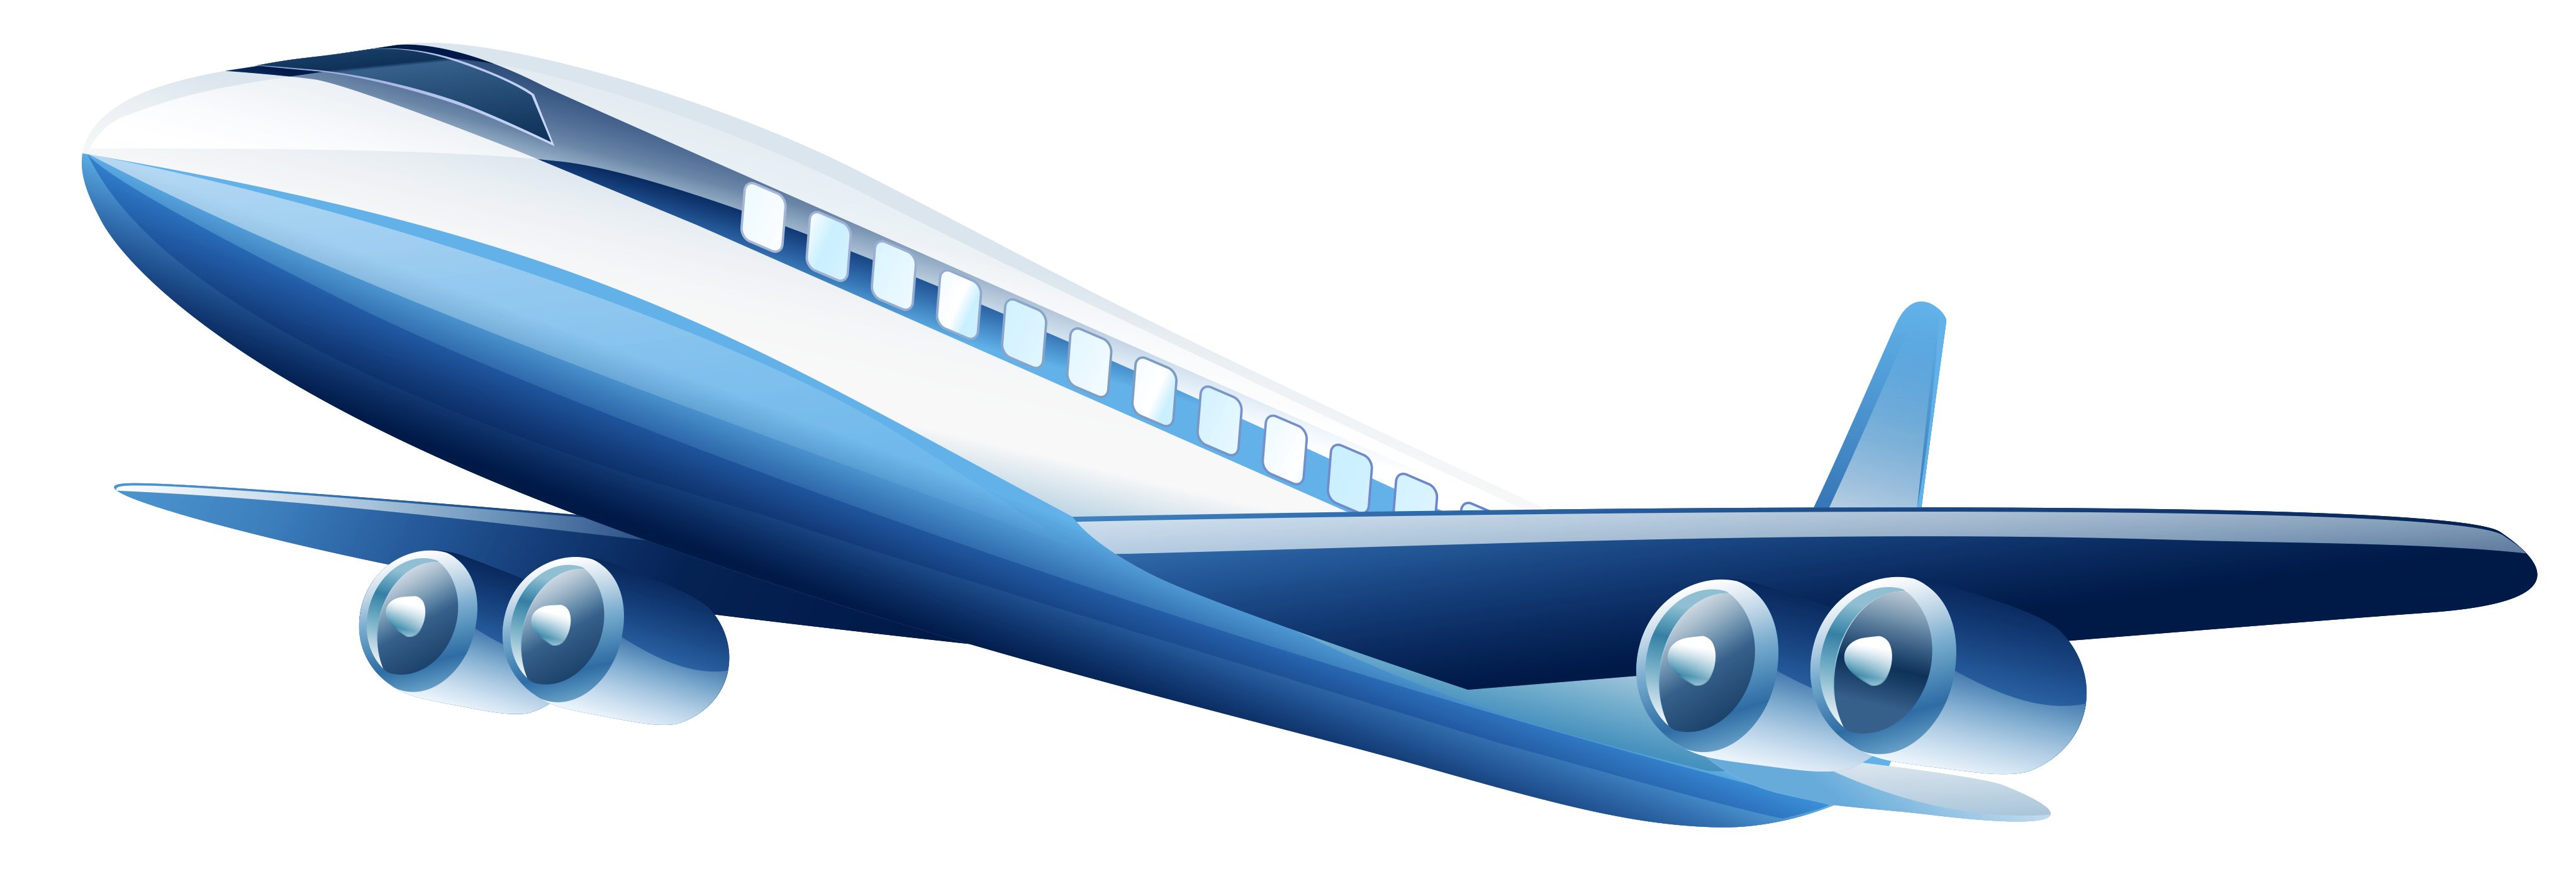 Airplane clipart png image.